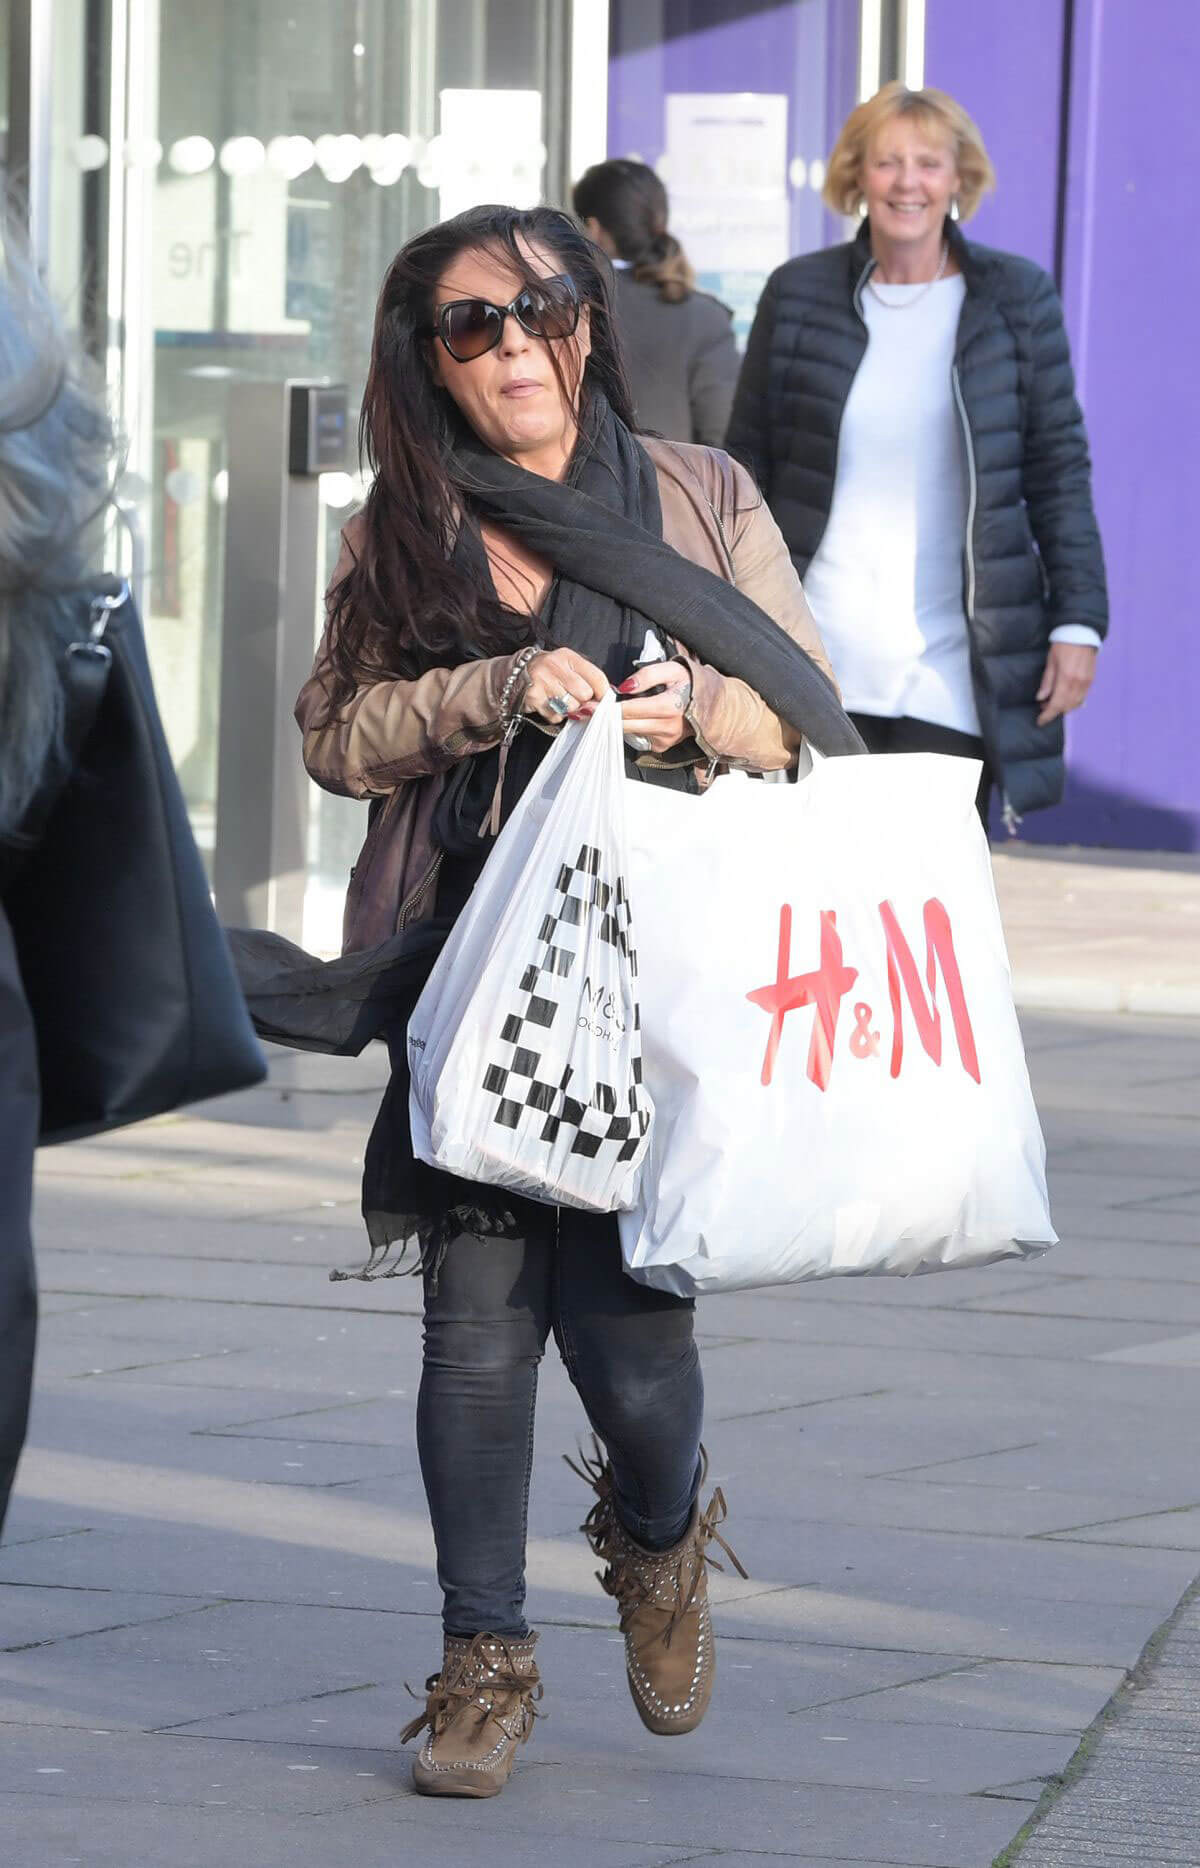 Jessie Wallace in Black Tight Dusky Jeans Out and About in London